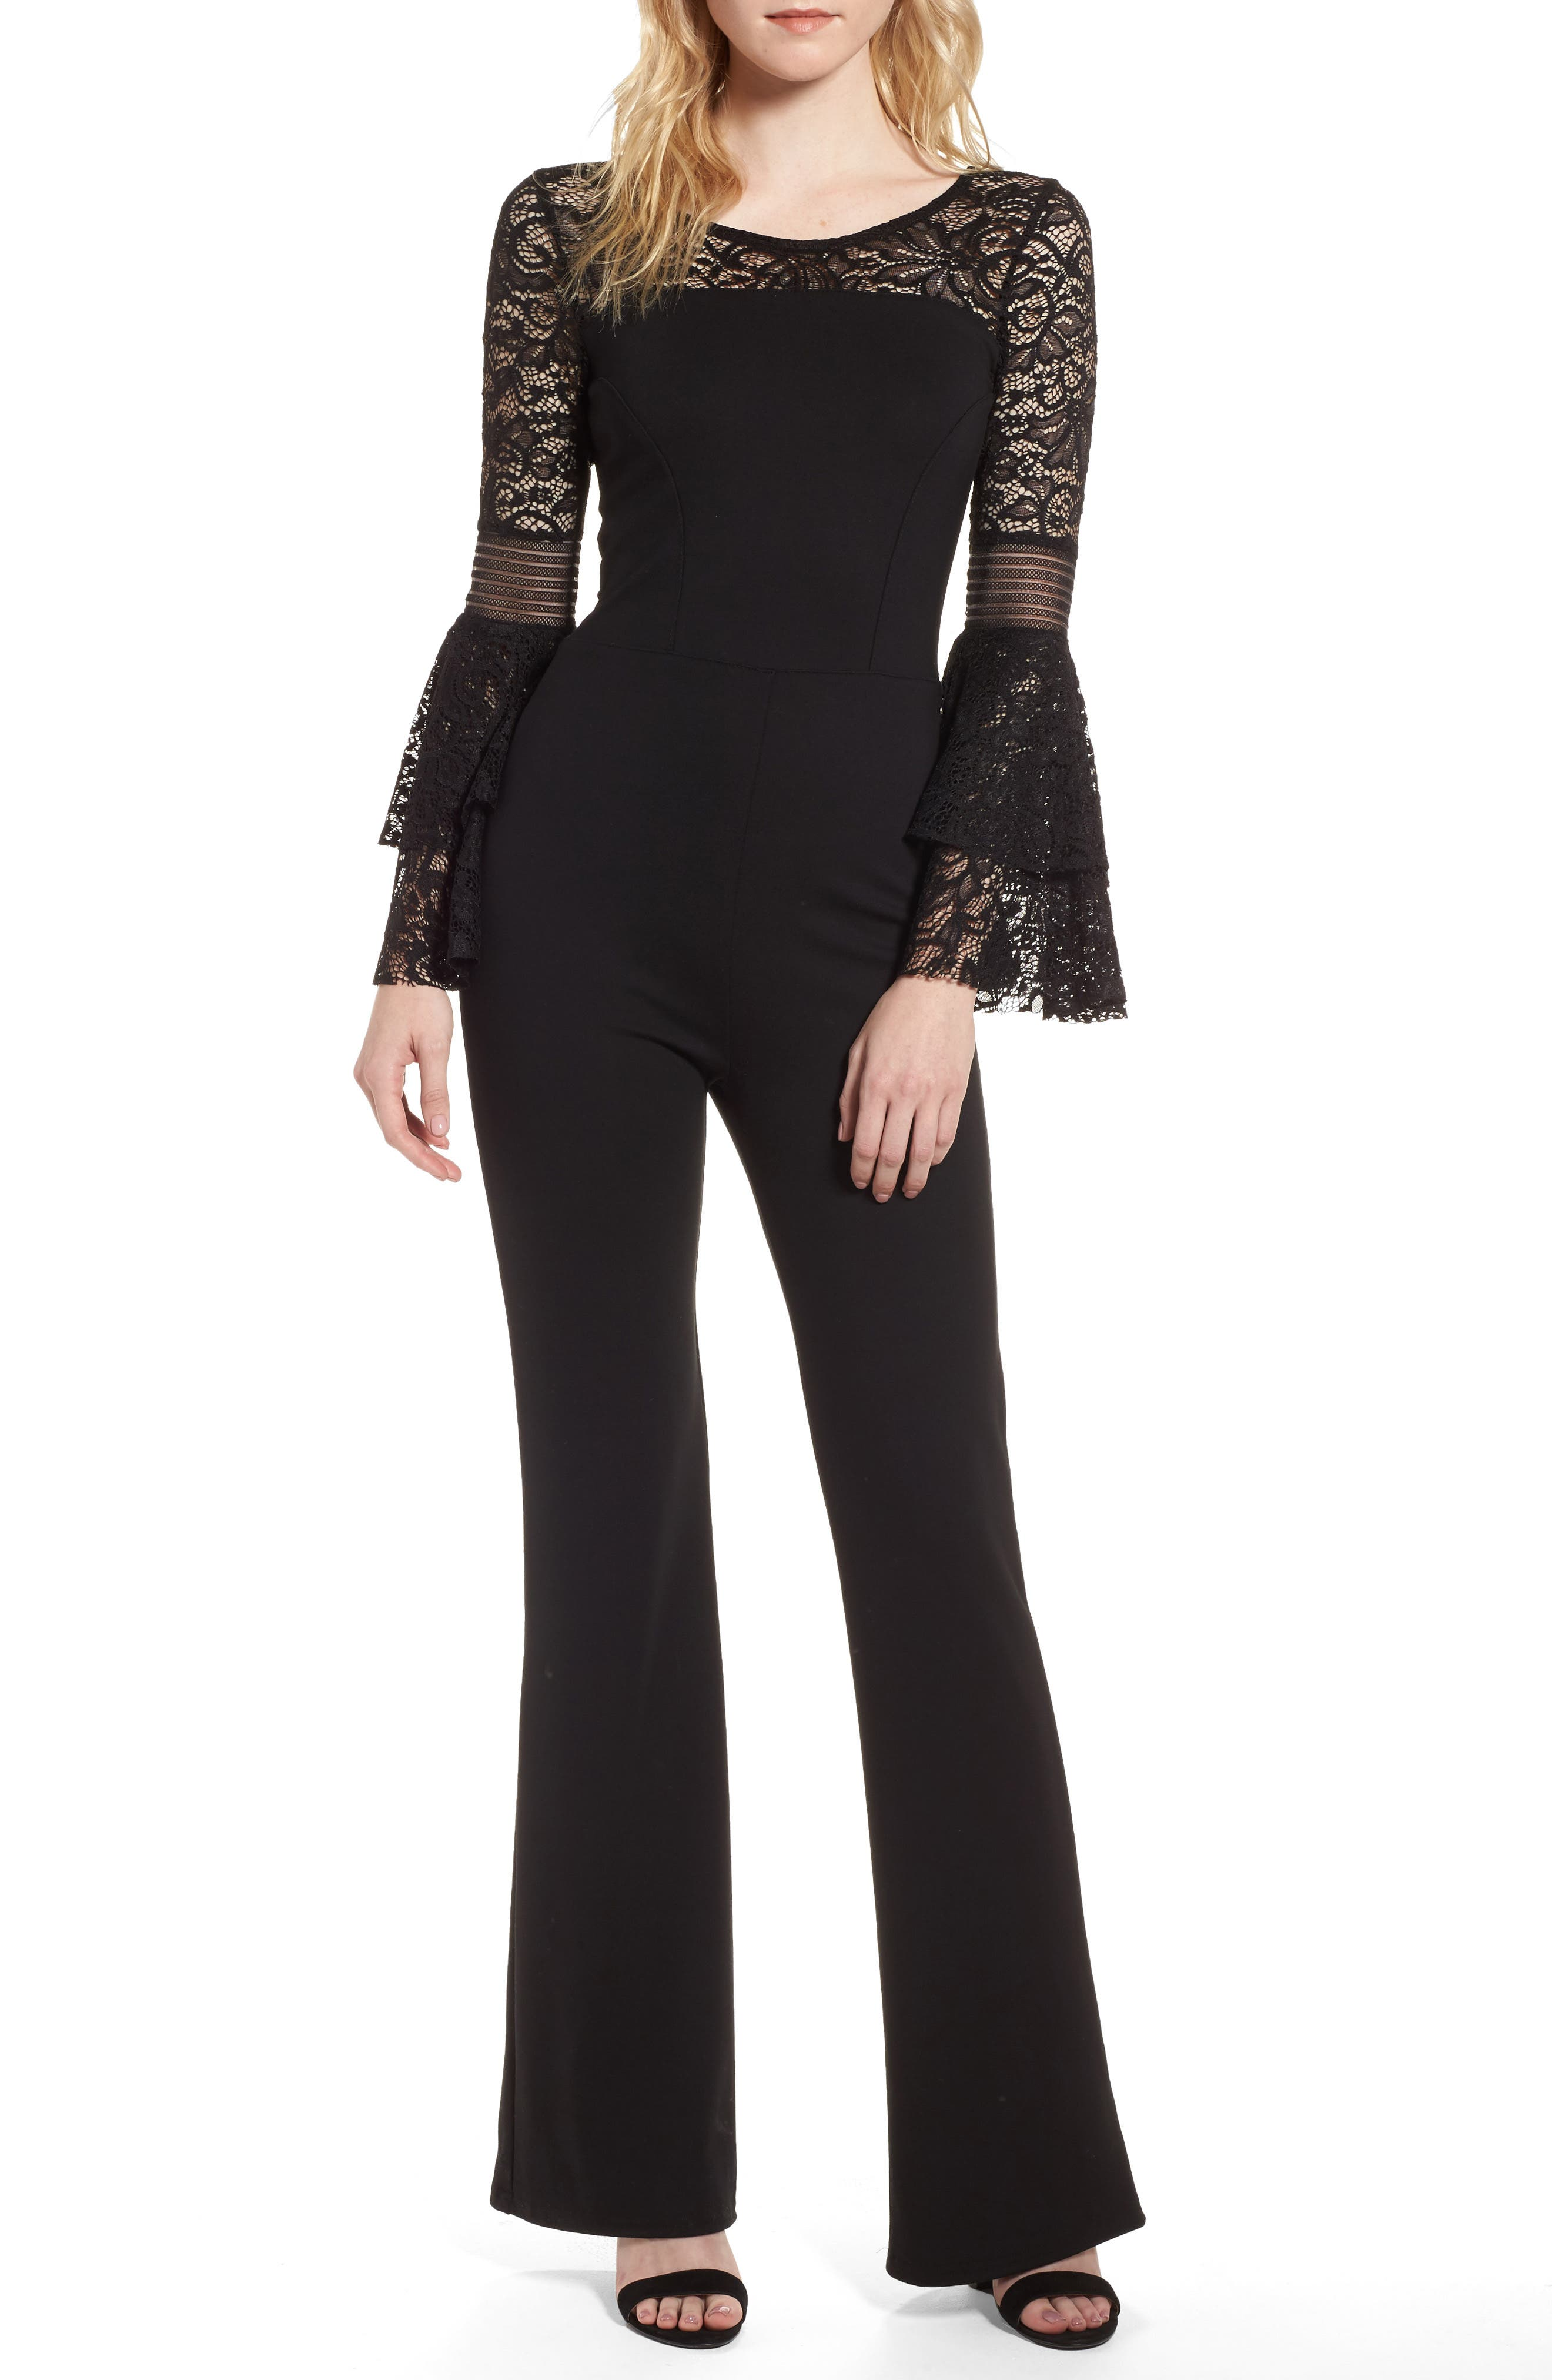 Floetry Lace Bell Sleeve Romper,                         Main,                         color, Black